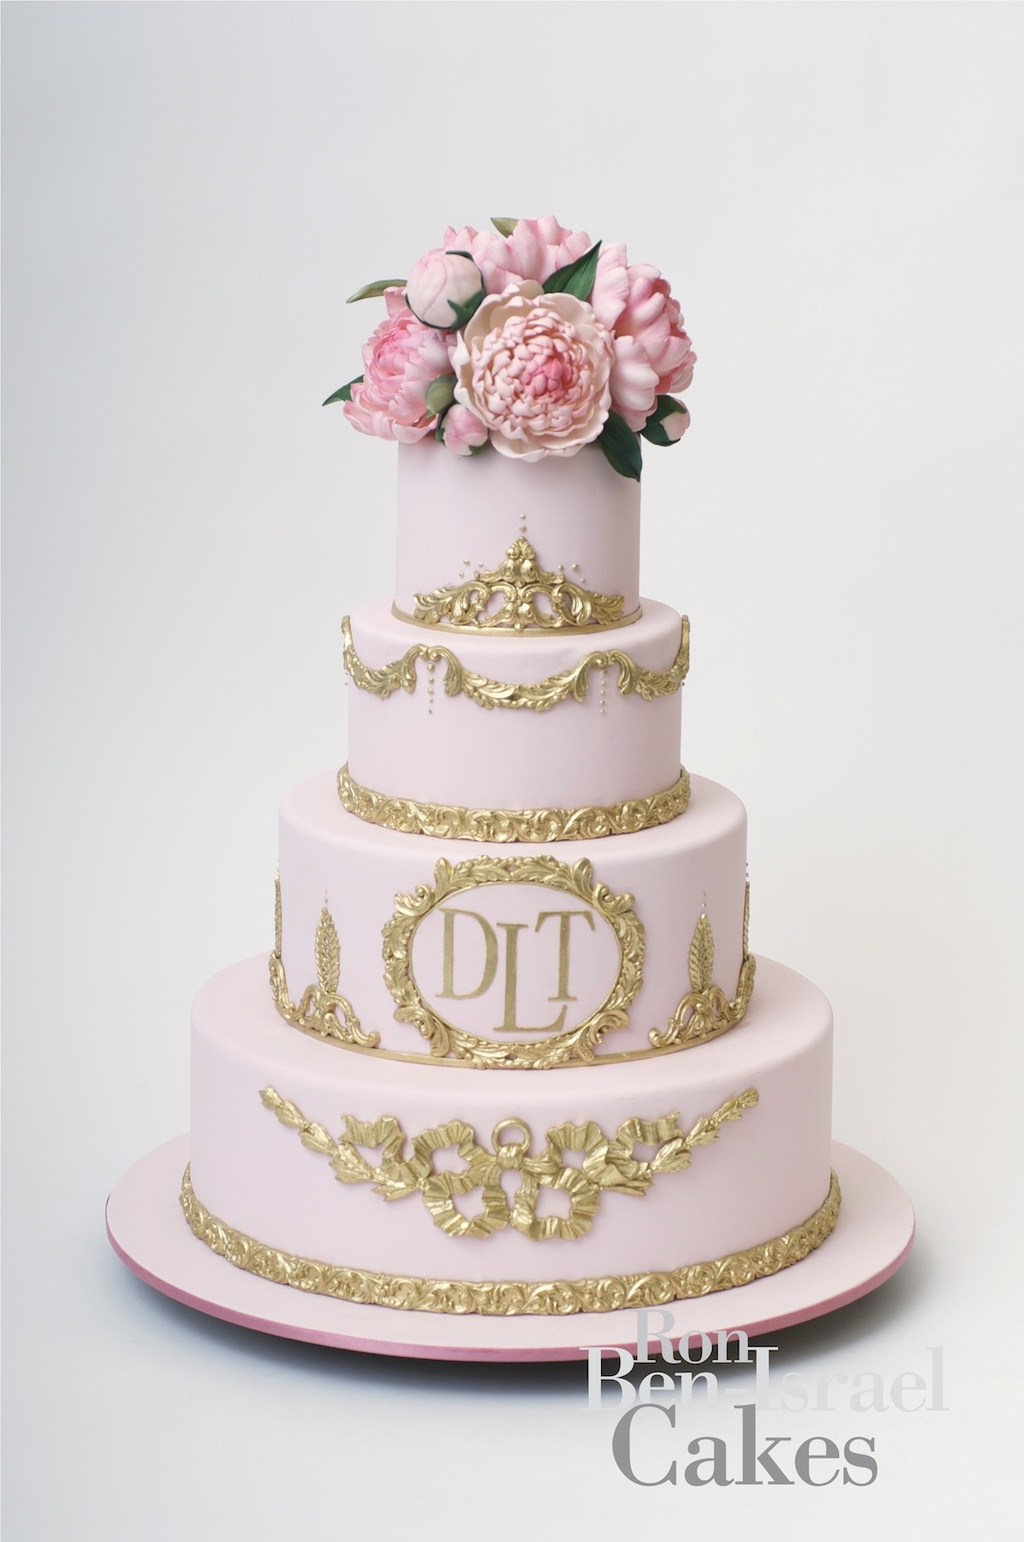 cake inspiration Ron Ben Isreal wedding cakes light pink gold